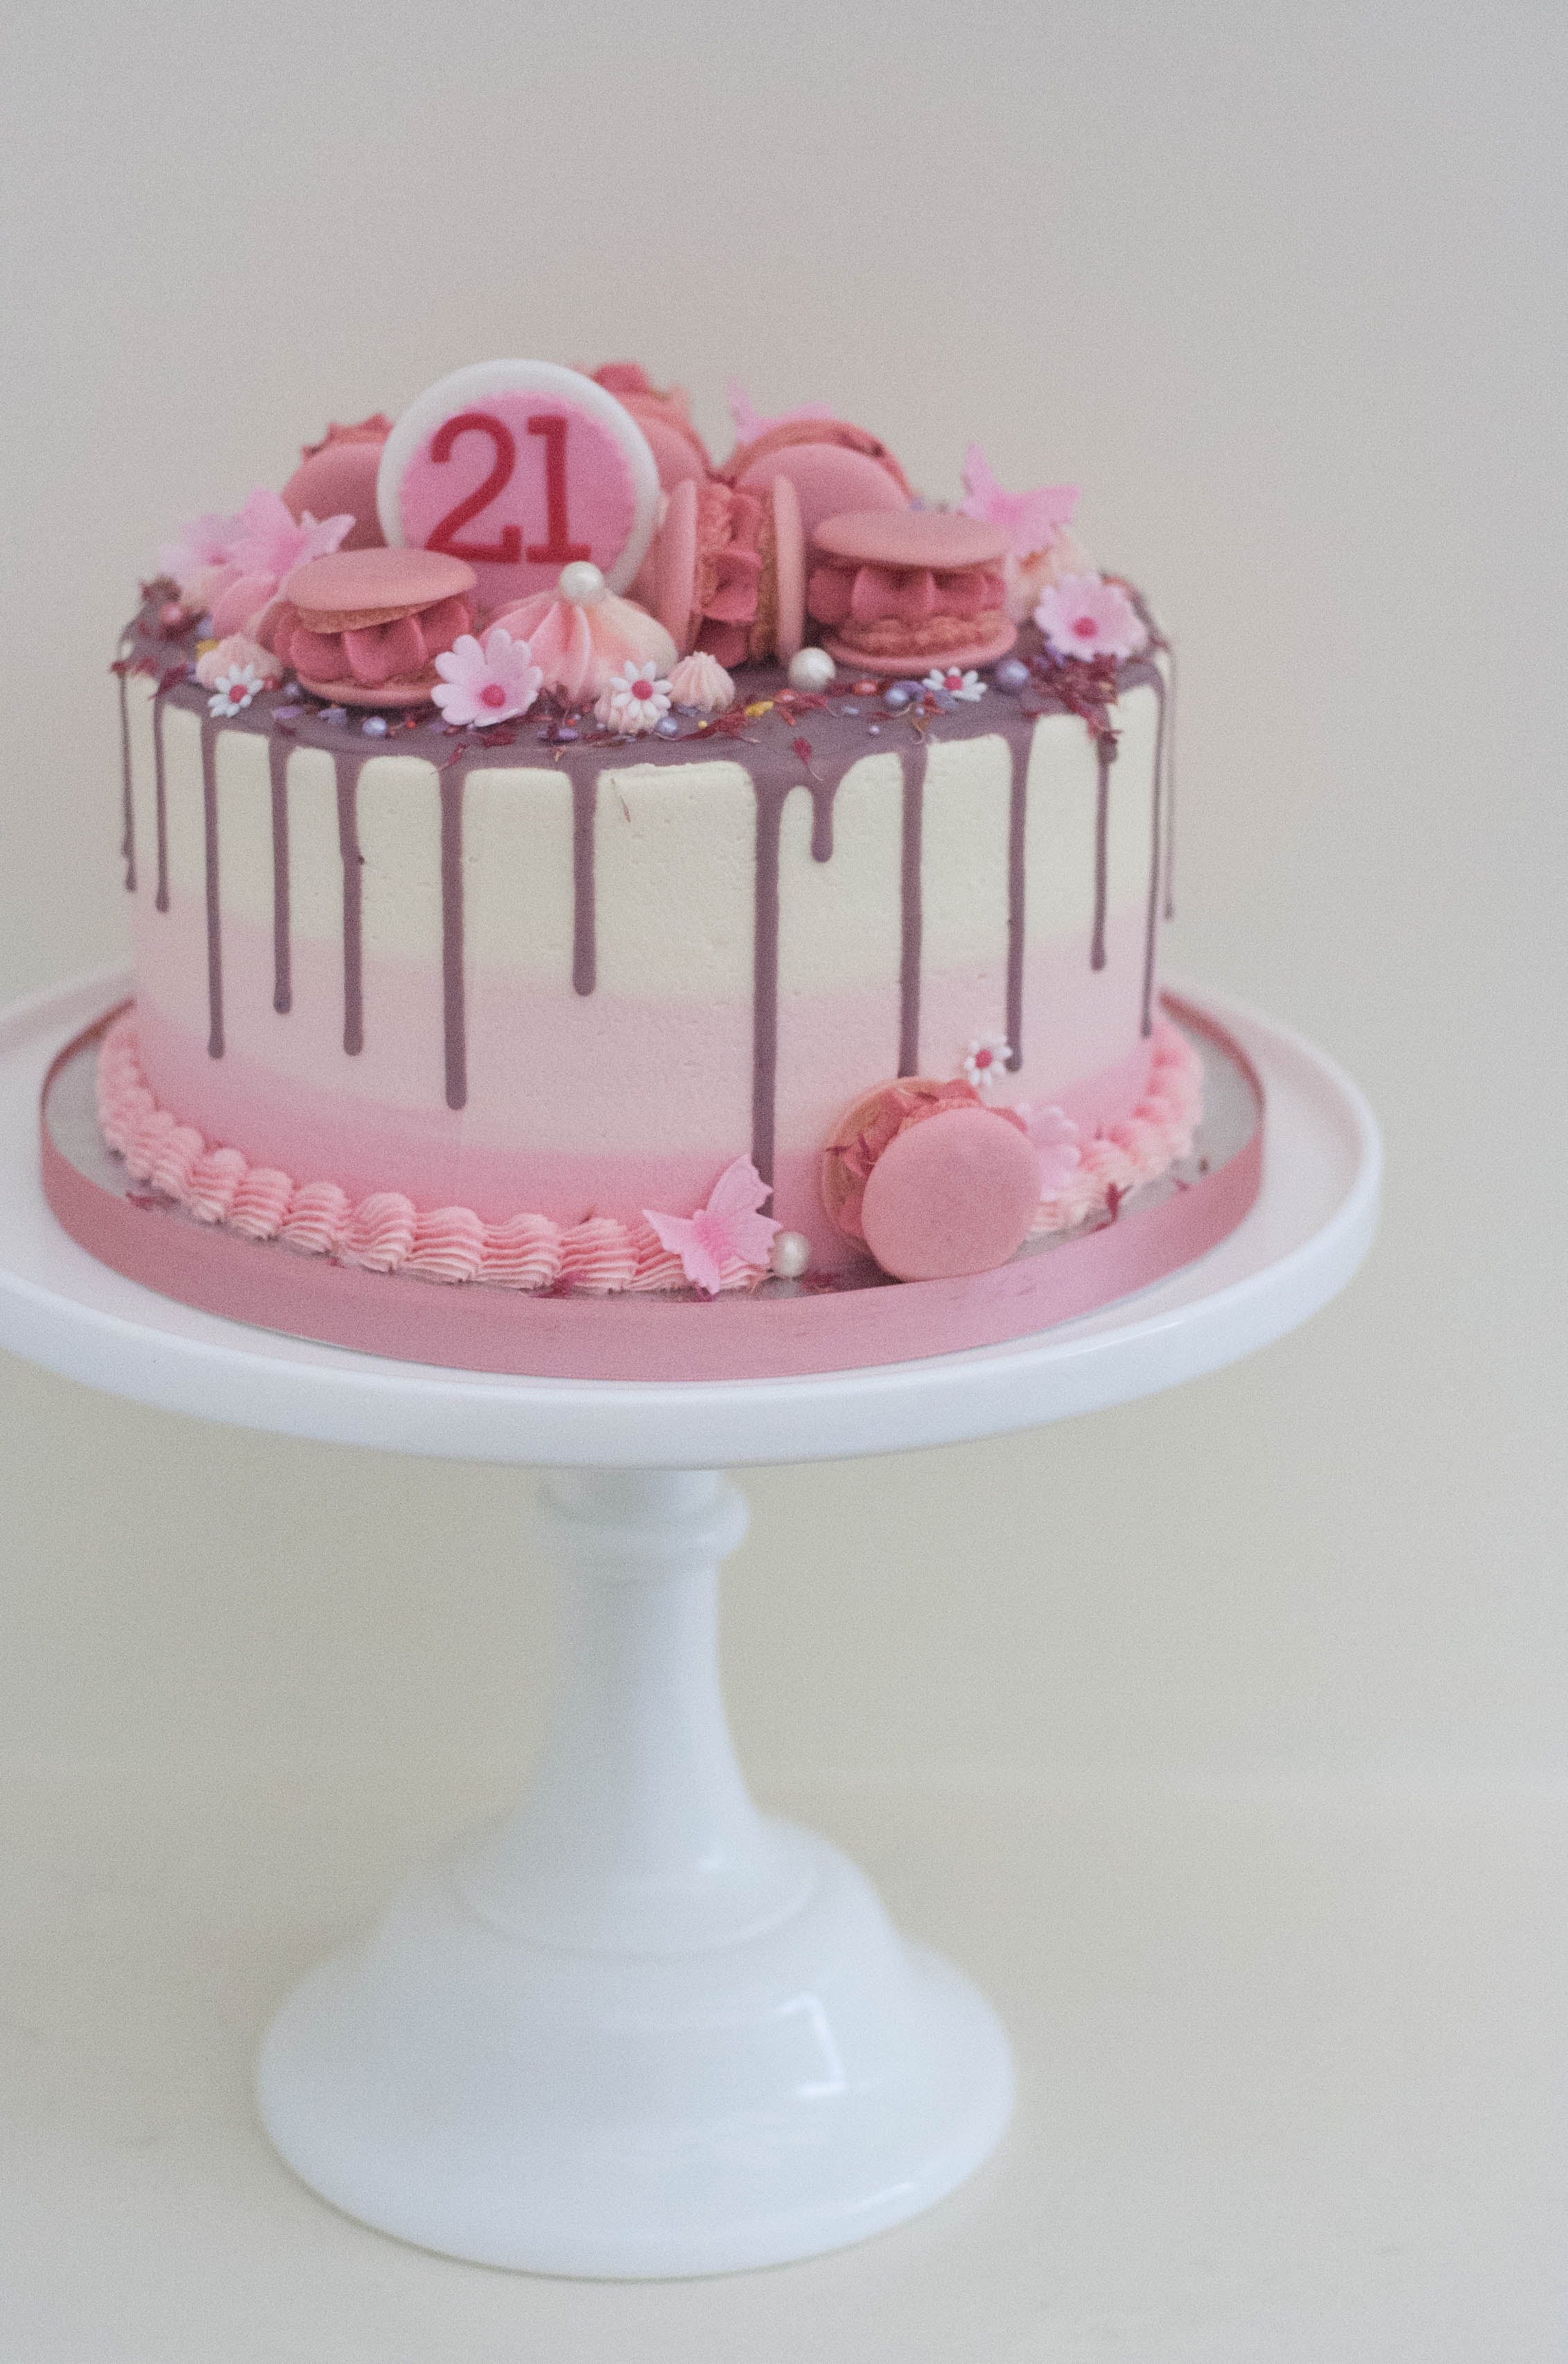 pink ombre drip cake with macarons sprin